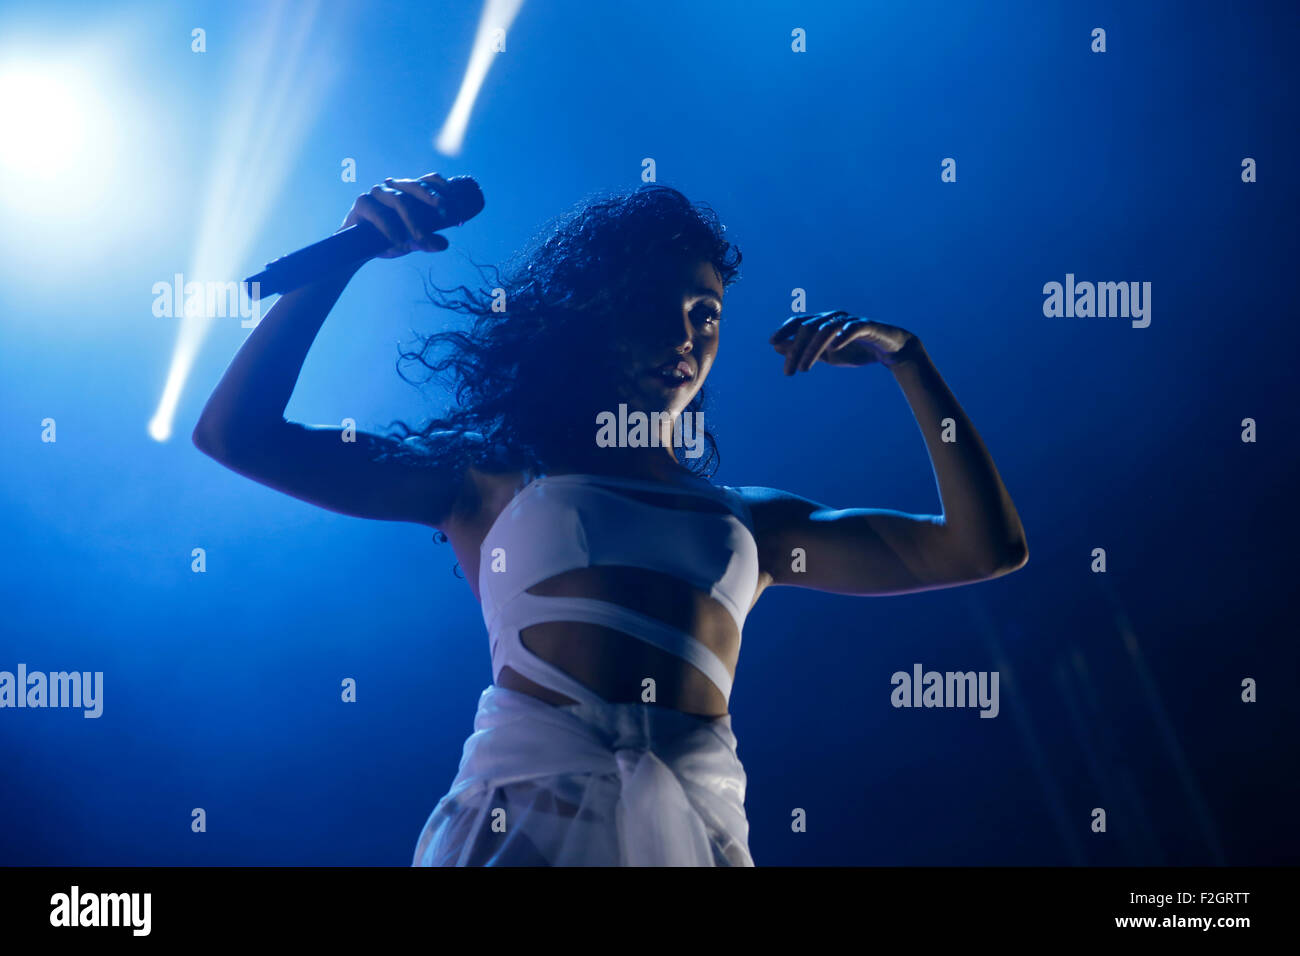 British singer Tahliah Debrett Barnett, known by the stage name FKA twigs, performs live during Sonar advanced music - Stock Image